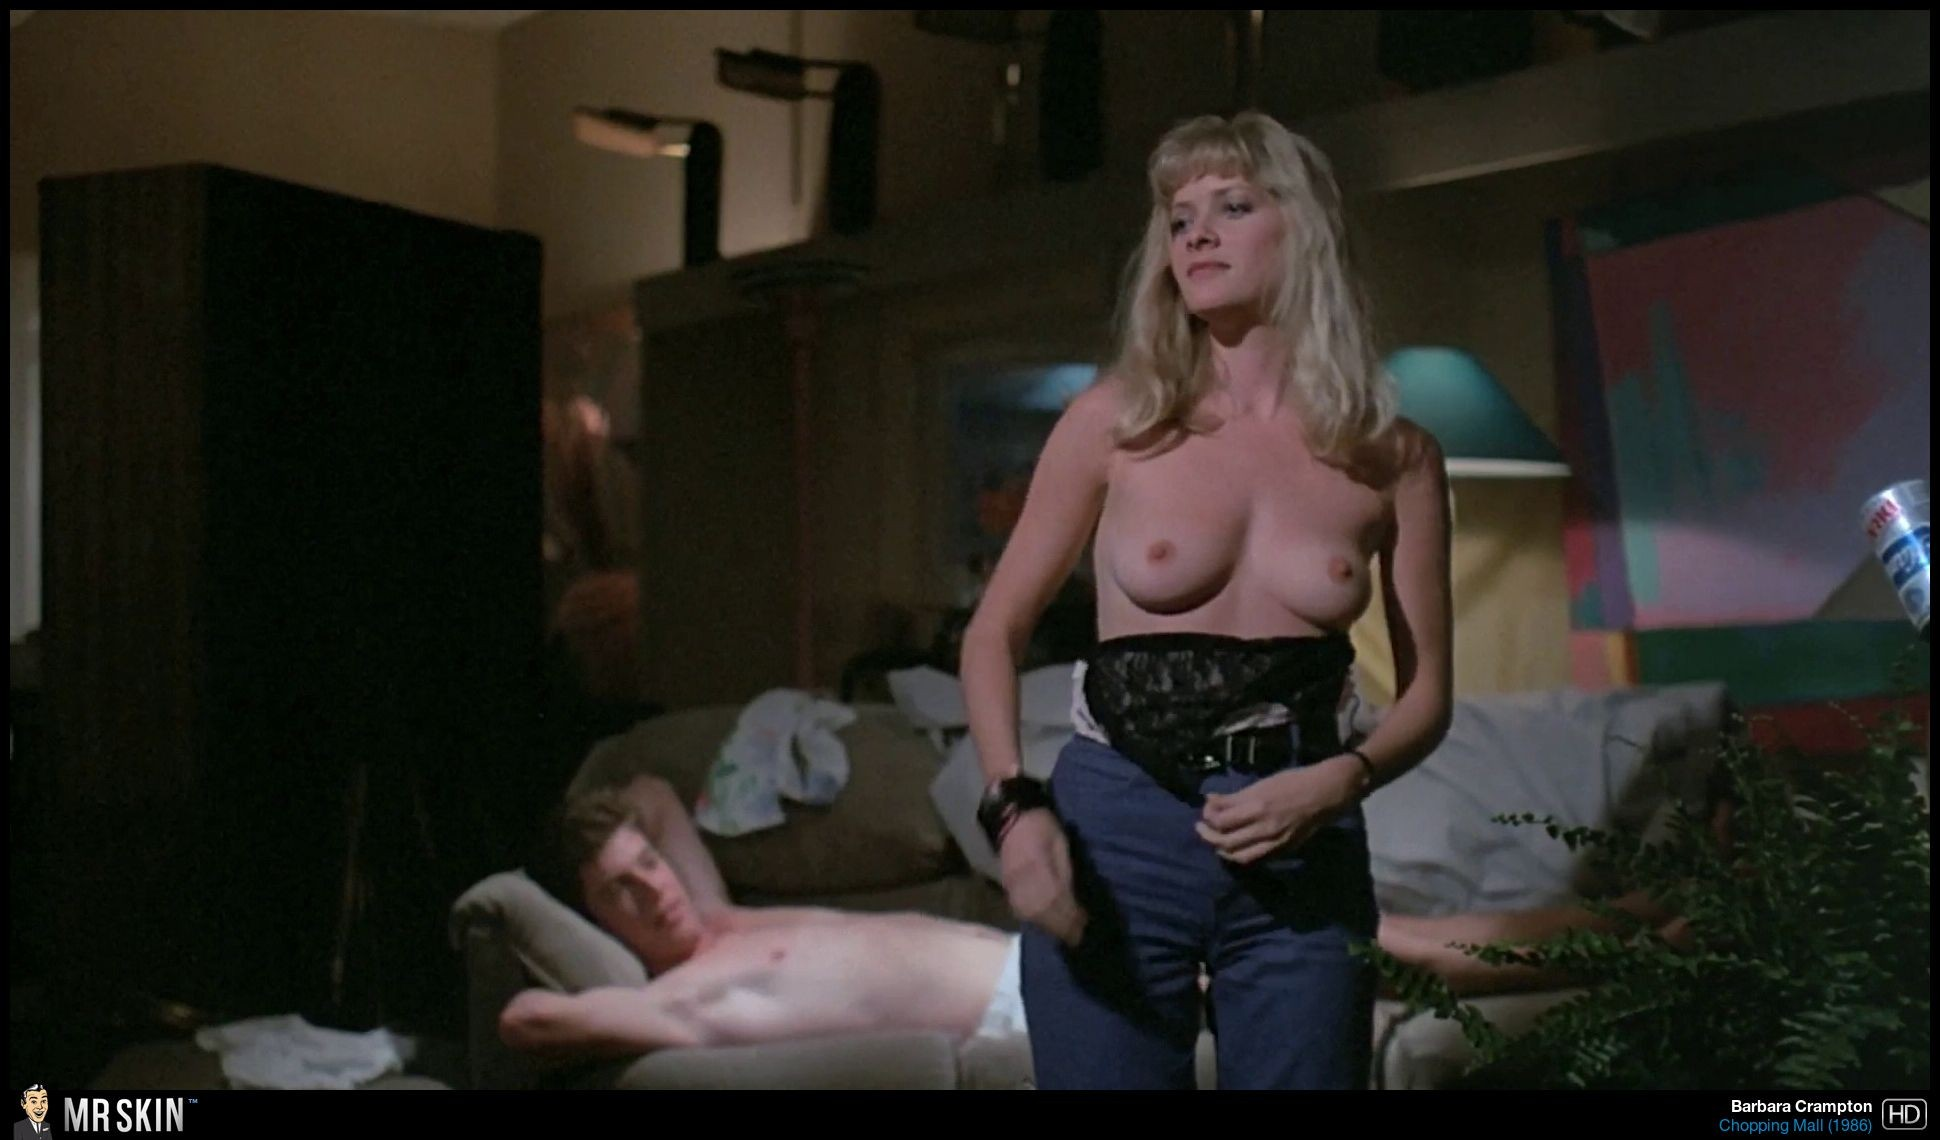 Barbara hershey nude the entity - 1 part 9